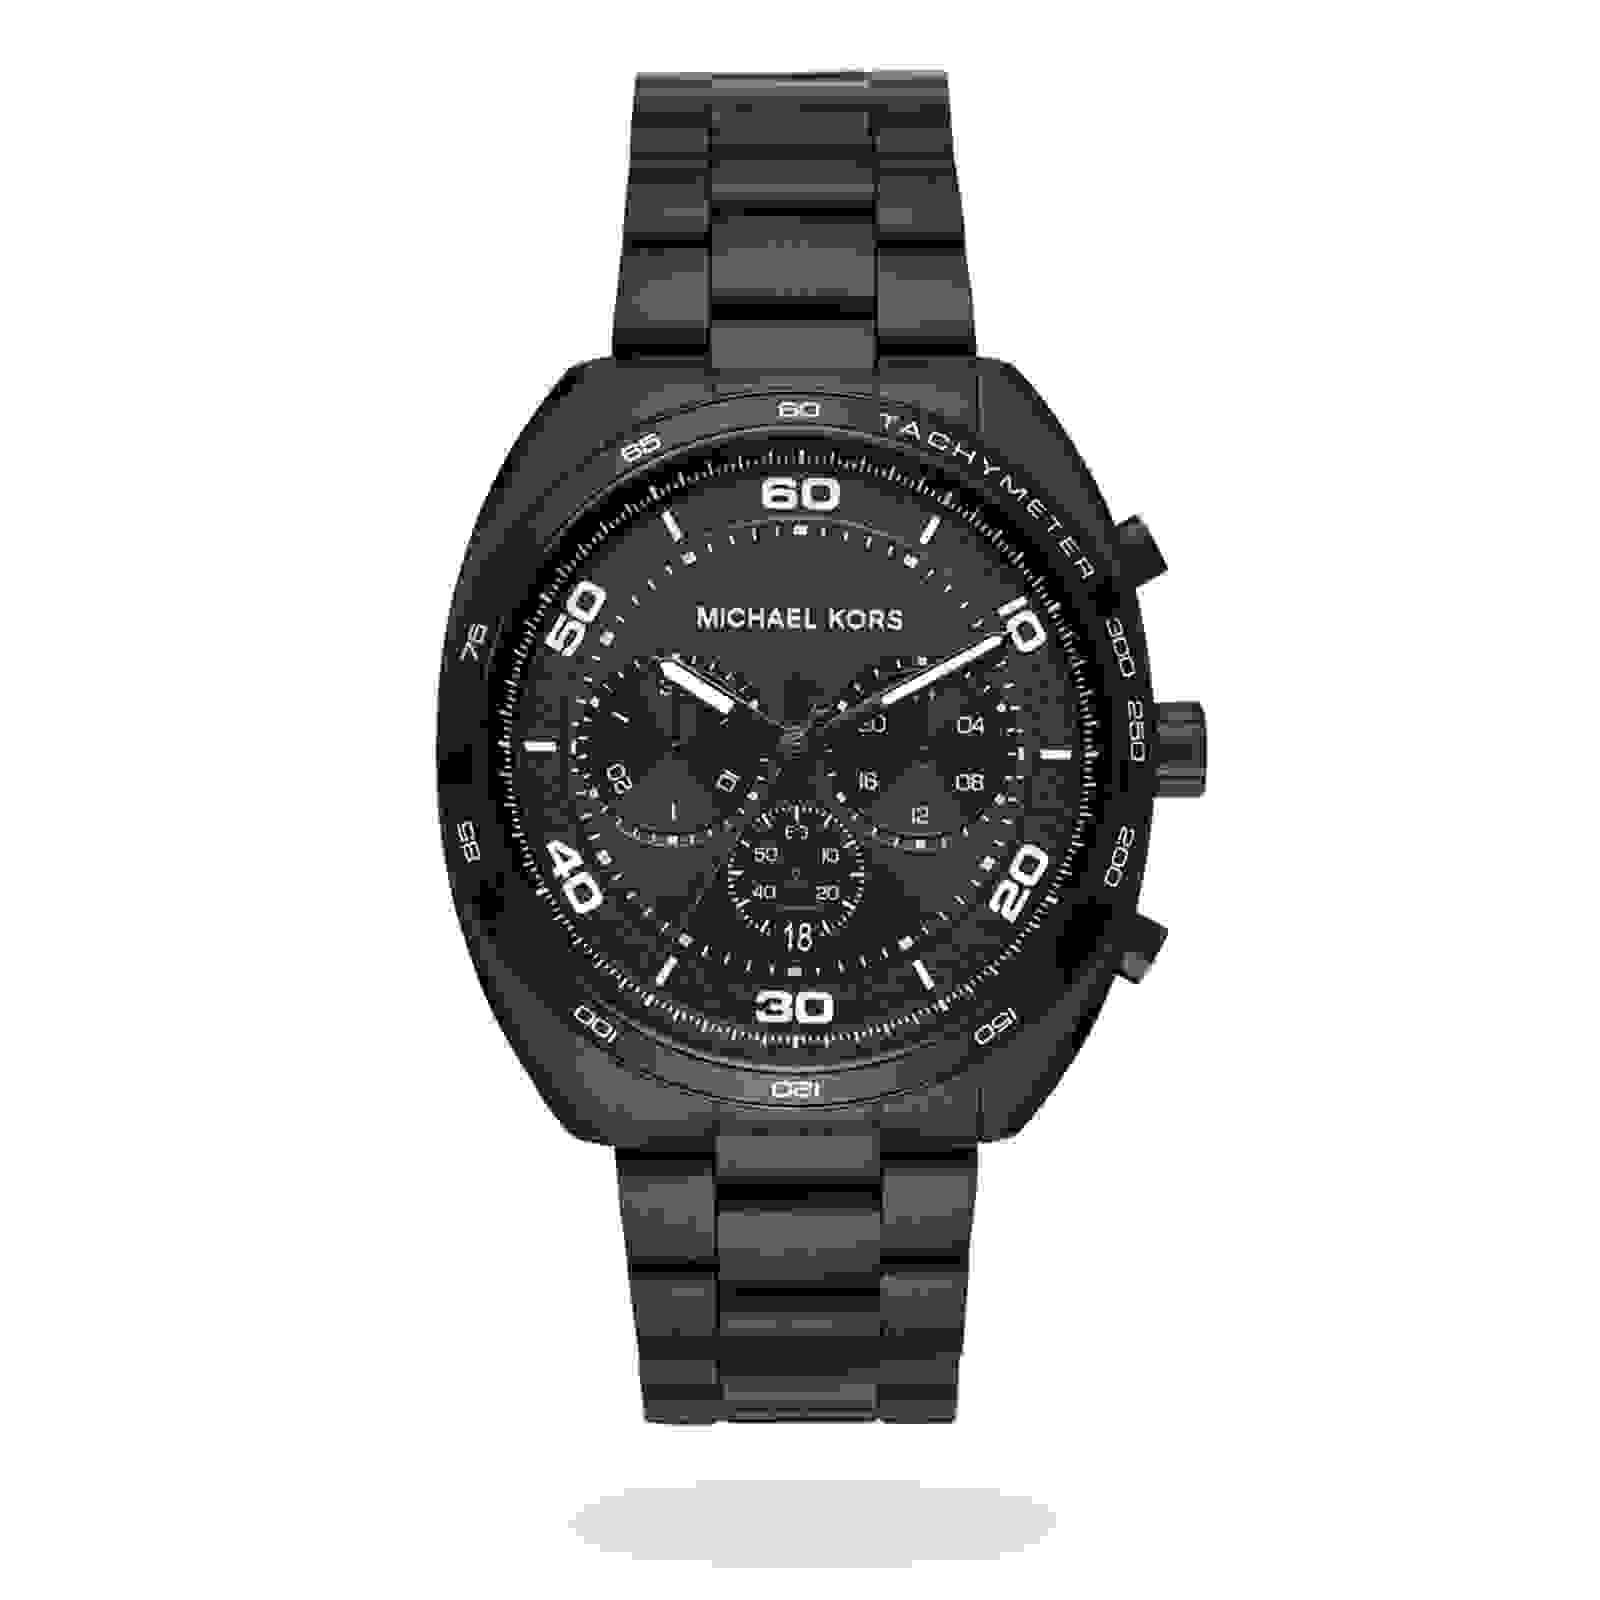 Michael Kors Black IP Chronograph Mens Watch